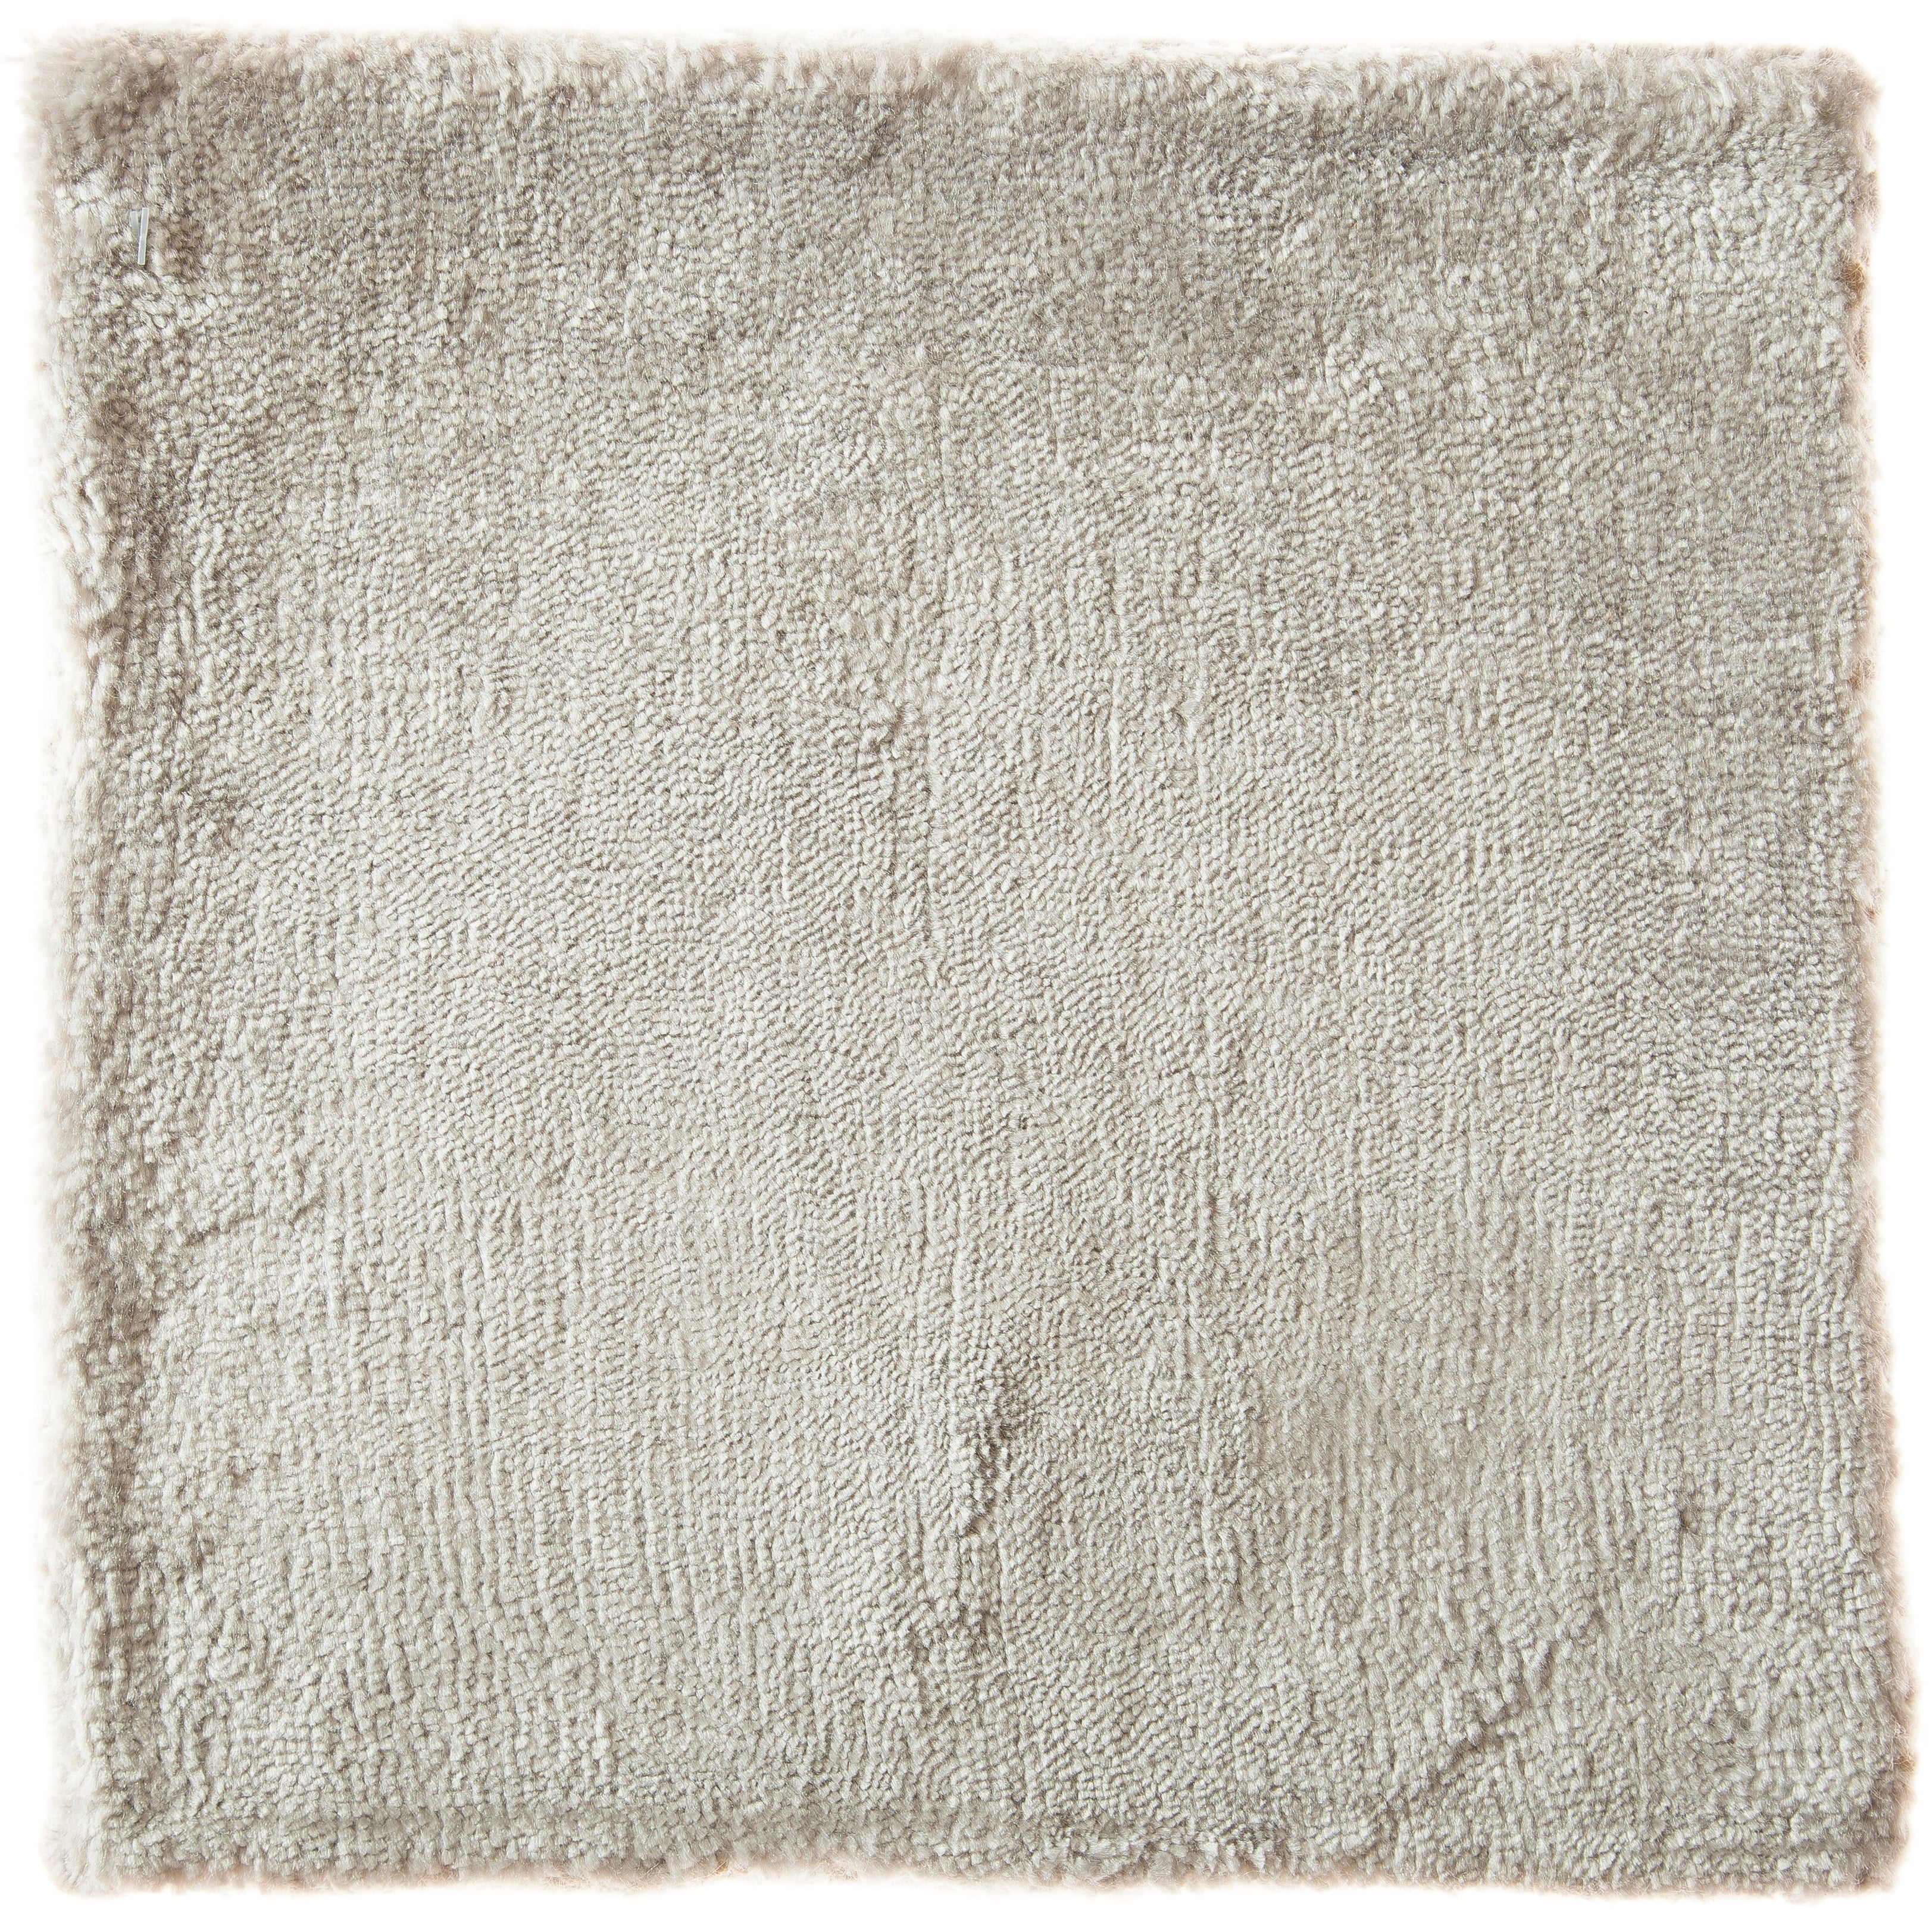 Ivory Opal Silver Tone Hand-Loom Solid Neutral Rug in Any Custom Size